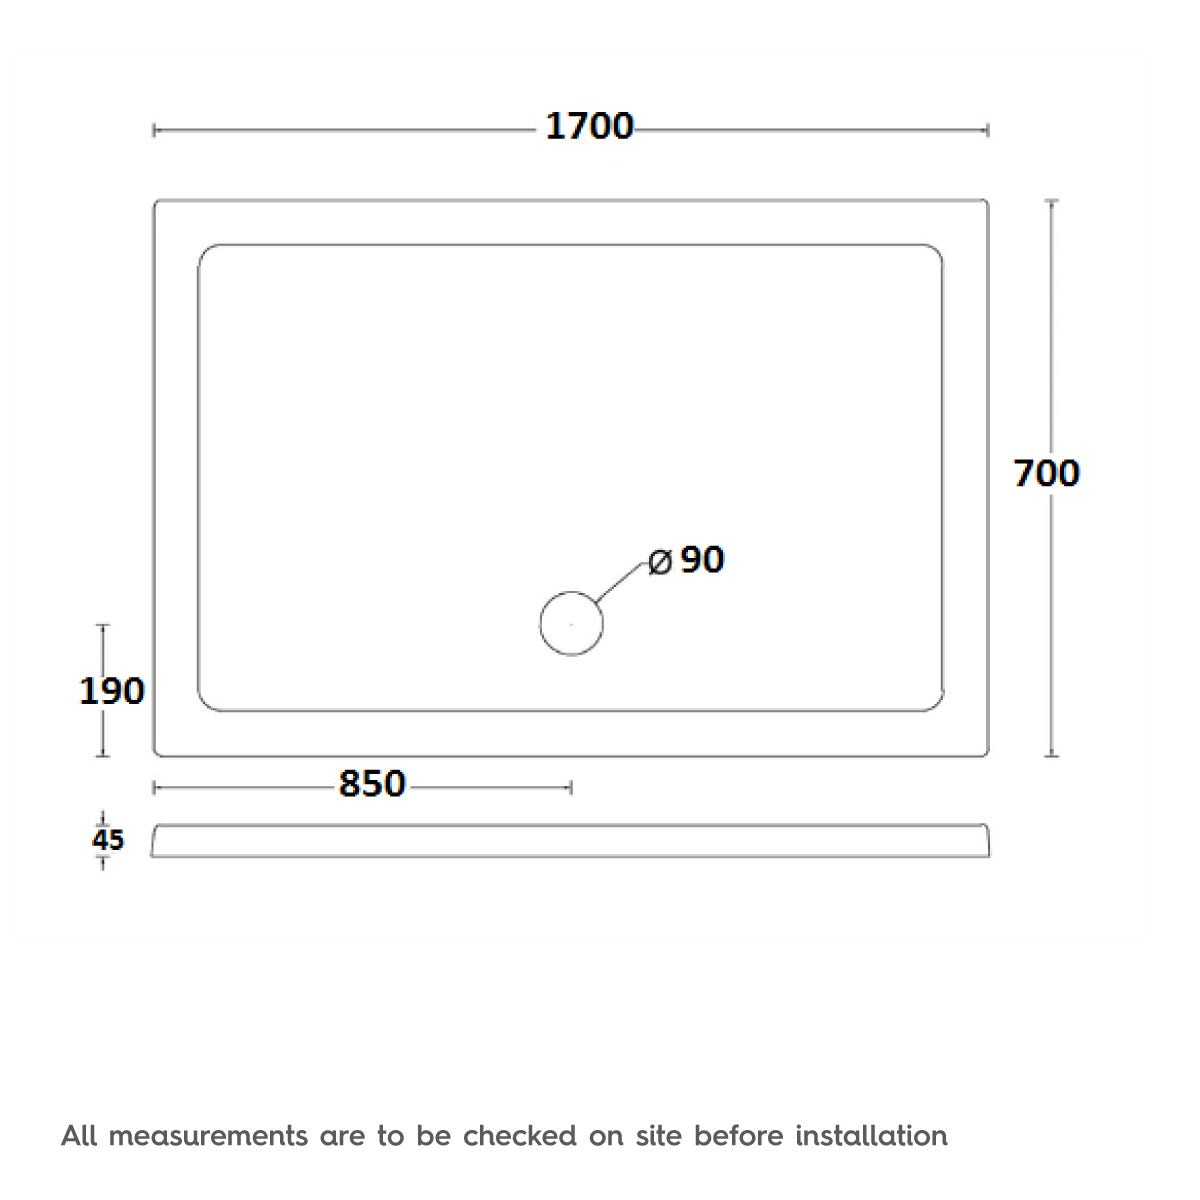 Dimensions for 1700 x 700